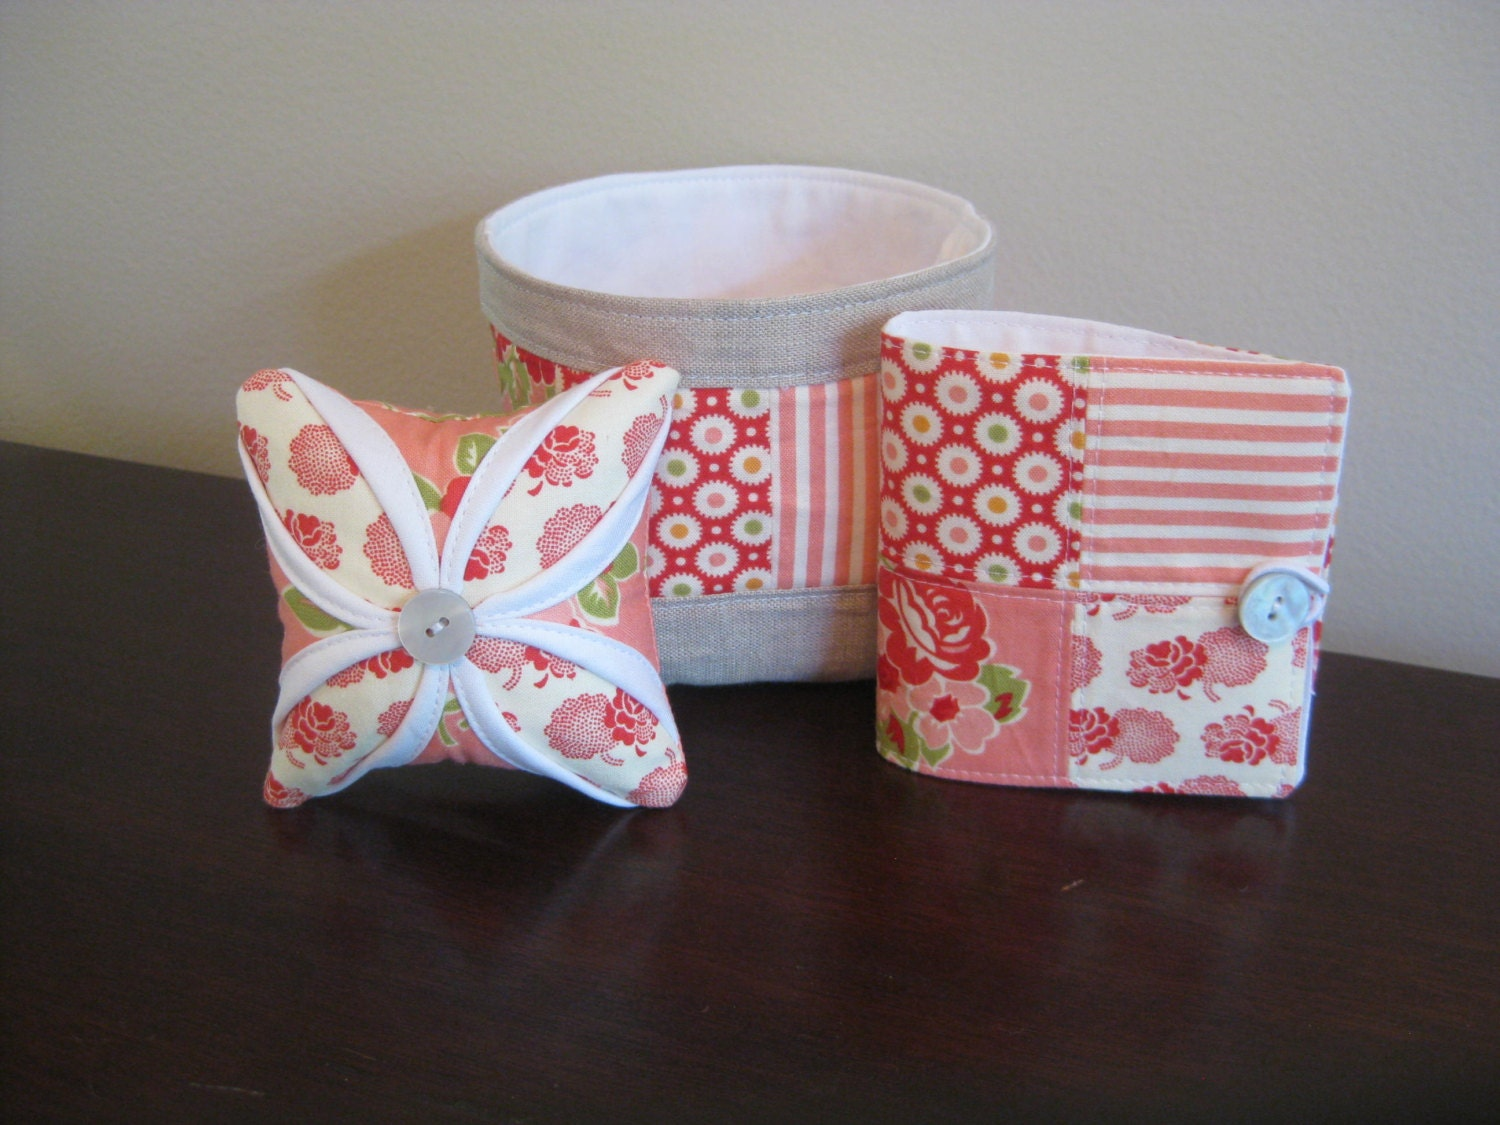 Three Piece Sewing Accesories Set - Marmalade - Pincushion, Needle Book, and Thread Catcher- Made To Order